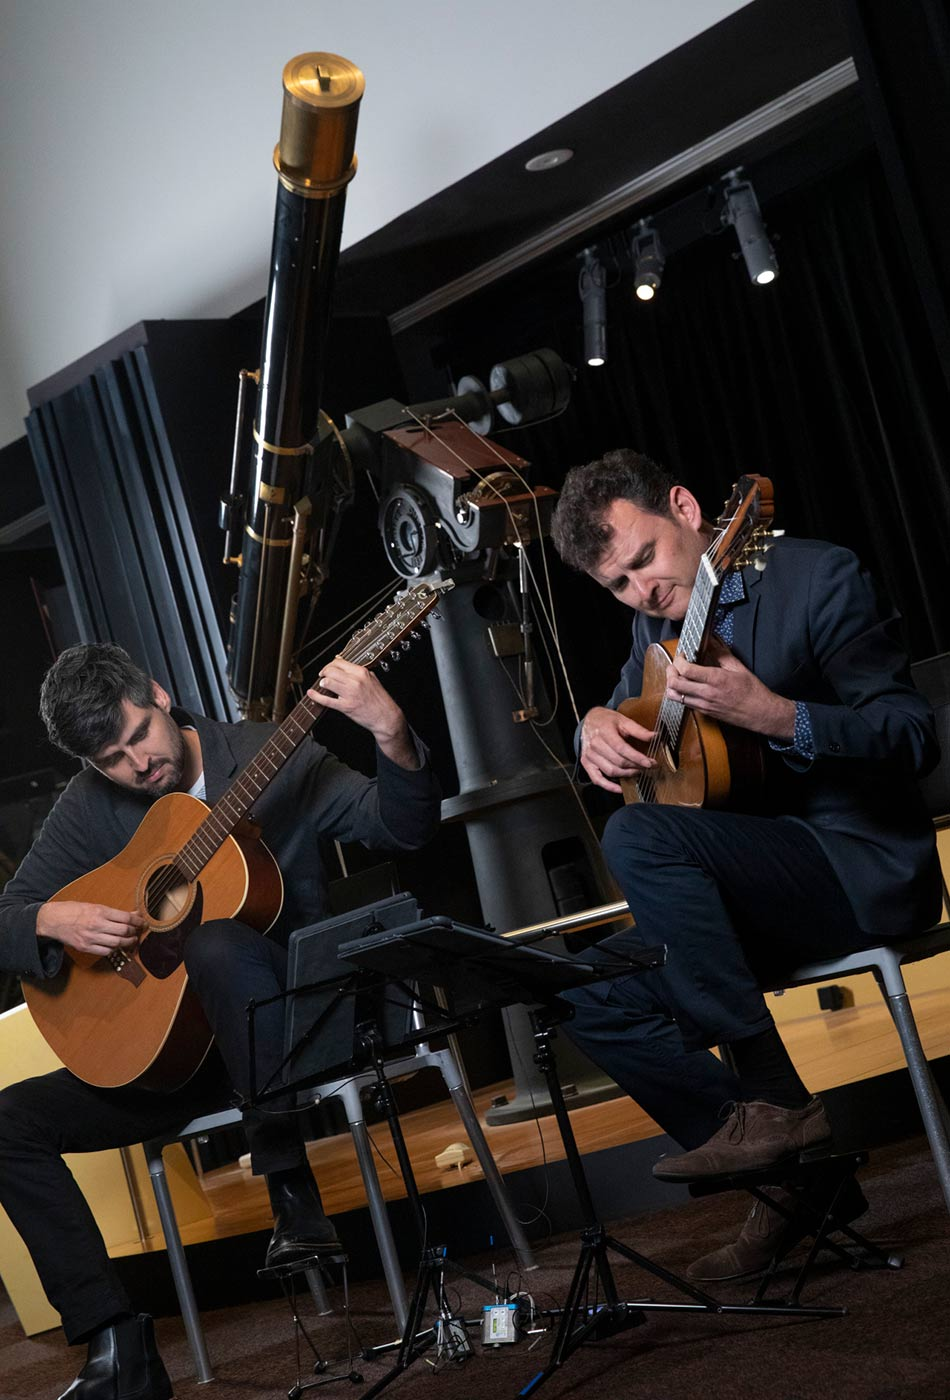 Slava and Leonard Grigoryan play guitars in front of a large telescope. - click to view larger image